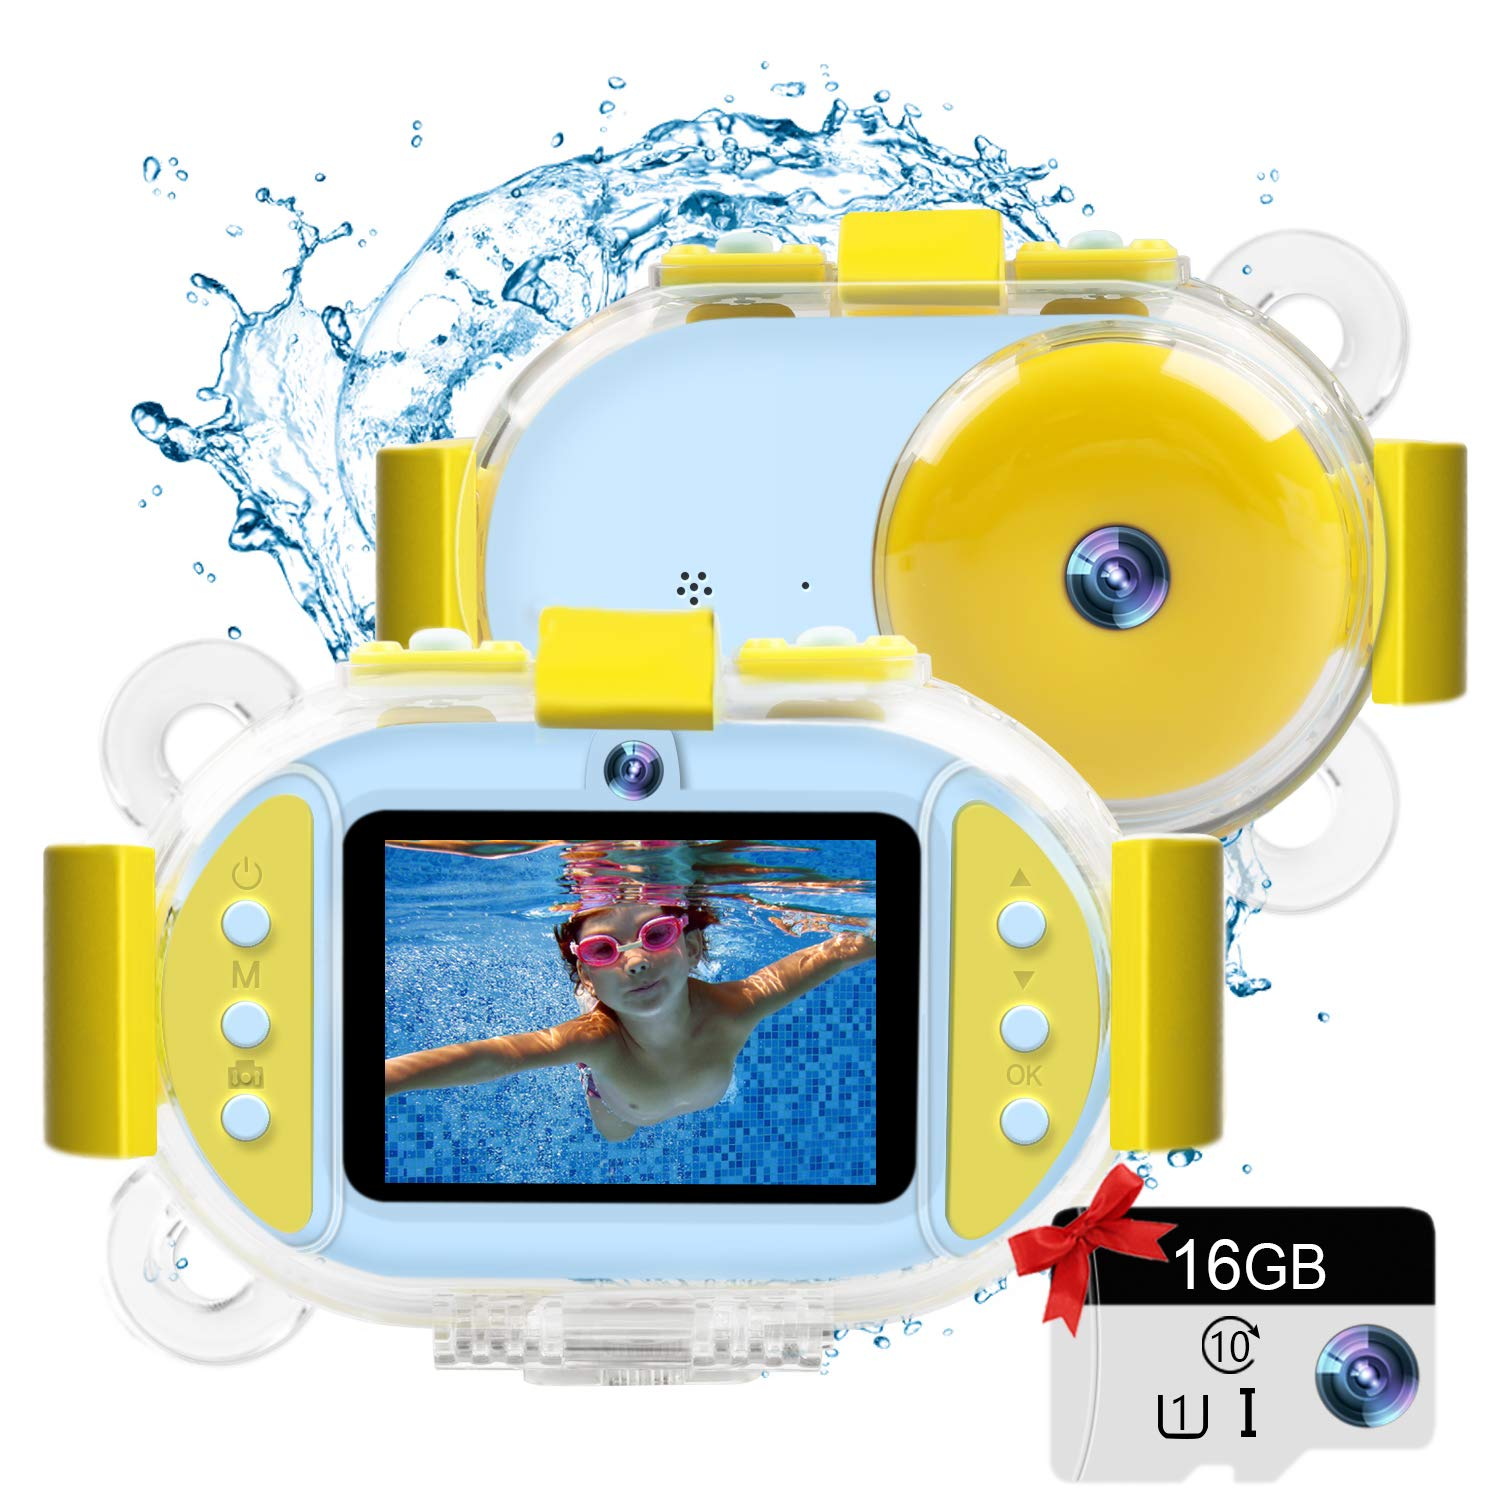 Kids Camera Gifts for Girls 1080P HD,Mini Rechargeable Children Shockproof Digital Front and Rear Selfie Camera Child Camcorder for 3-9 Year Old Kids Gifts waterproof 2.0'' LCD Screen (Blue waterproof) by LeaderPro